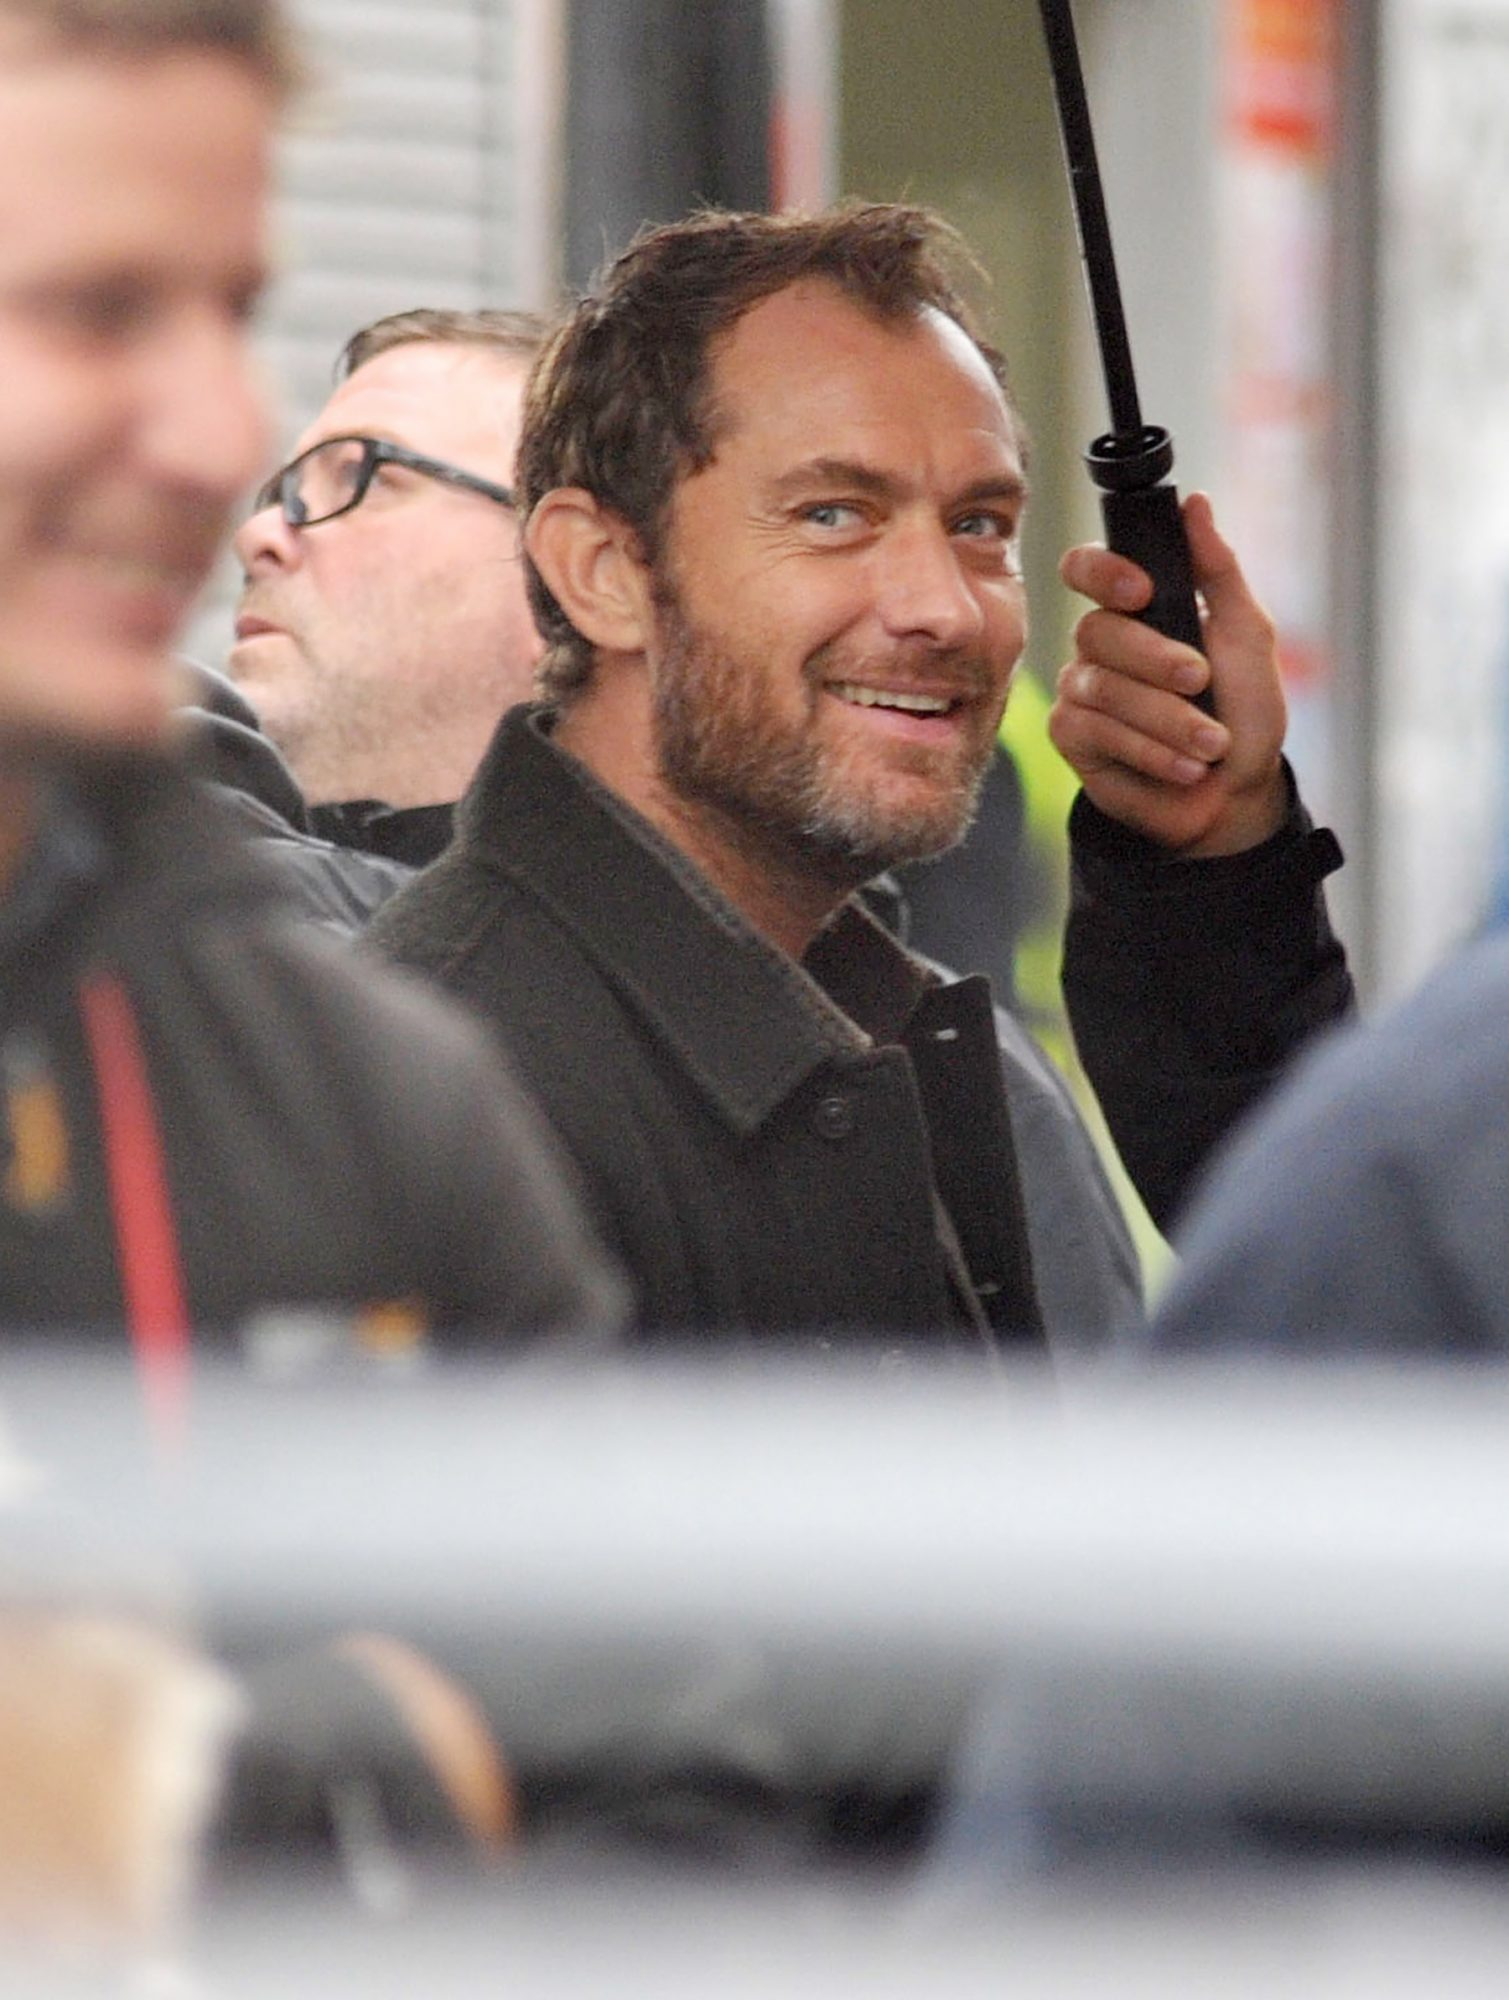 Jude Law Joins Blake Lively On the Set Of The Rhythm Section In Dublin